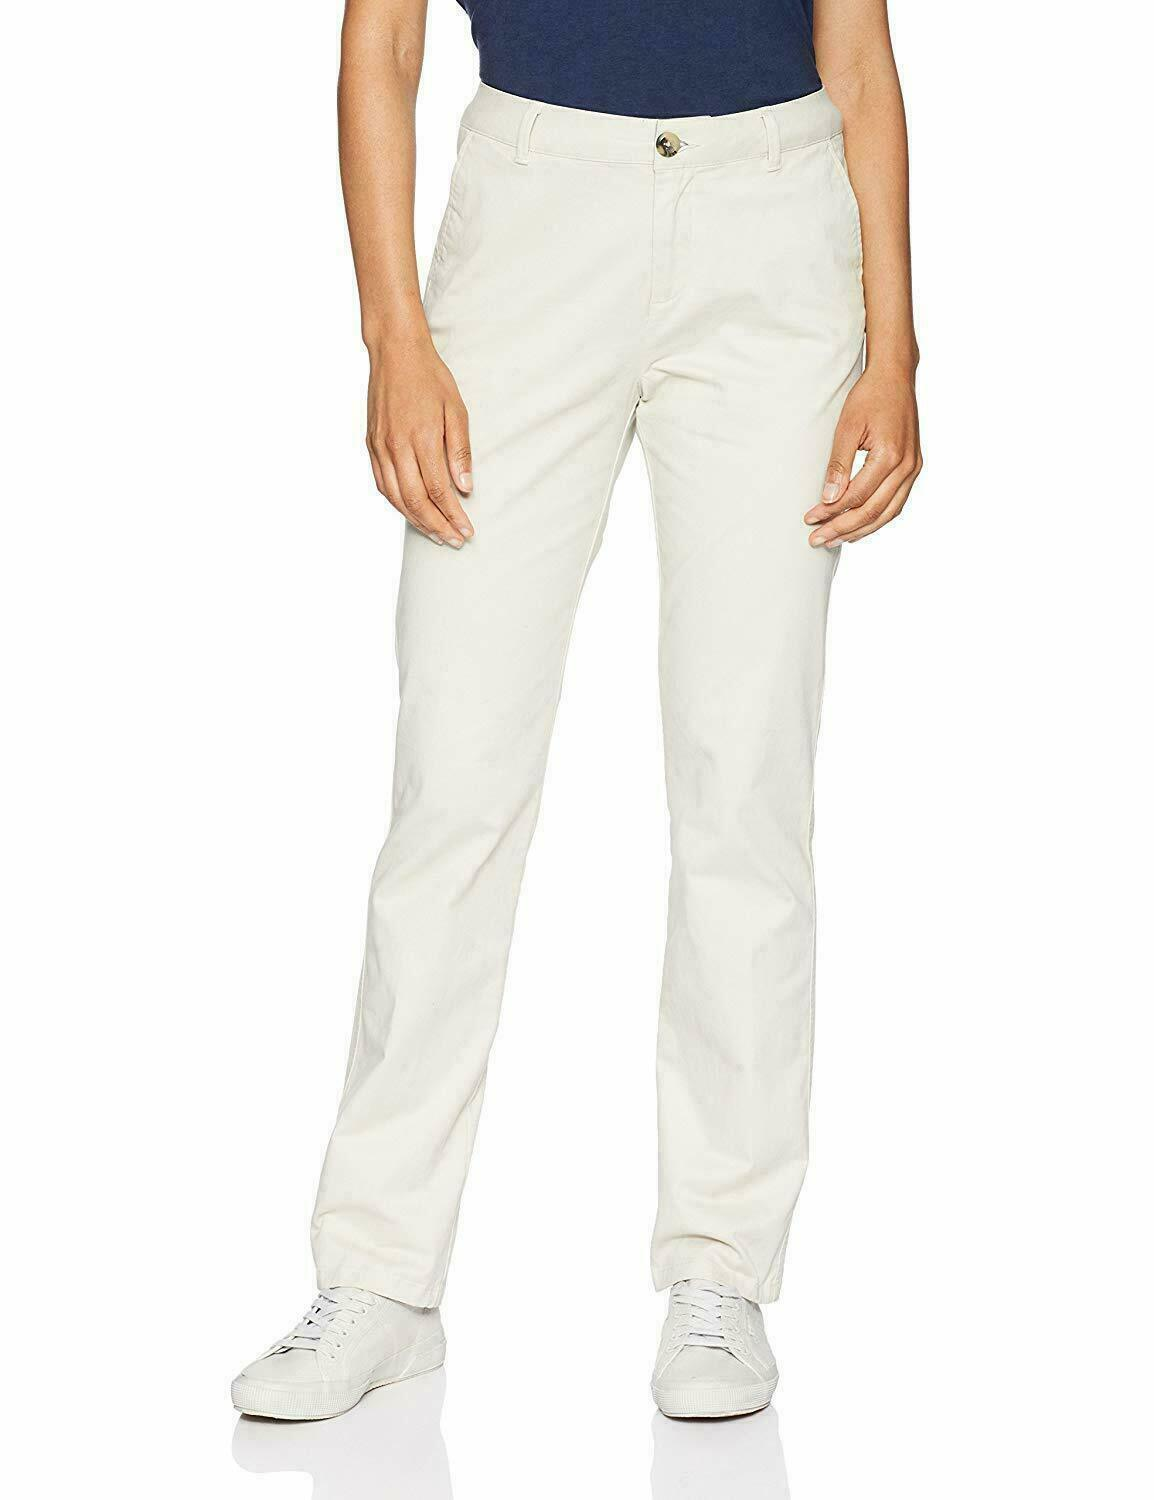 Primary image for Amazon Essentials Women's Straight-Fit Stretch Twill Chino Pant, Stone 8 Regular